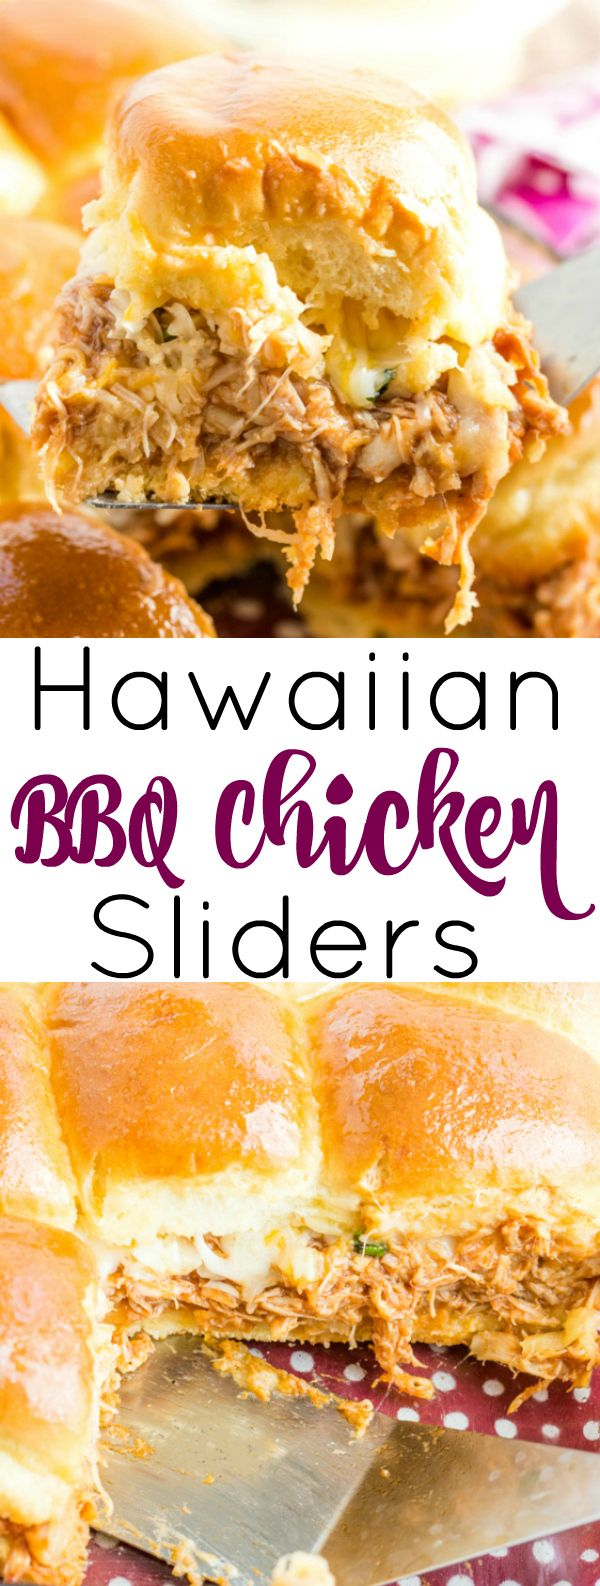 Enjoy game day with these sweet and tangy Hawaiian BBQ Chicken Sliders full of bbq chicken, pineapple, onions, cilantro and cheeses.